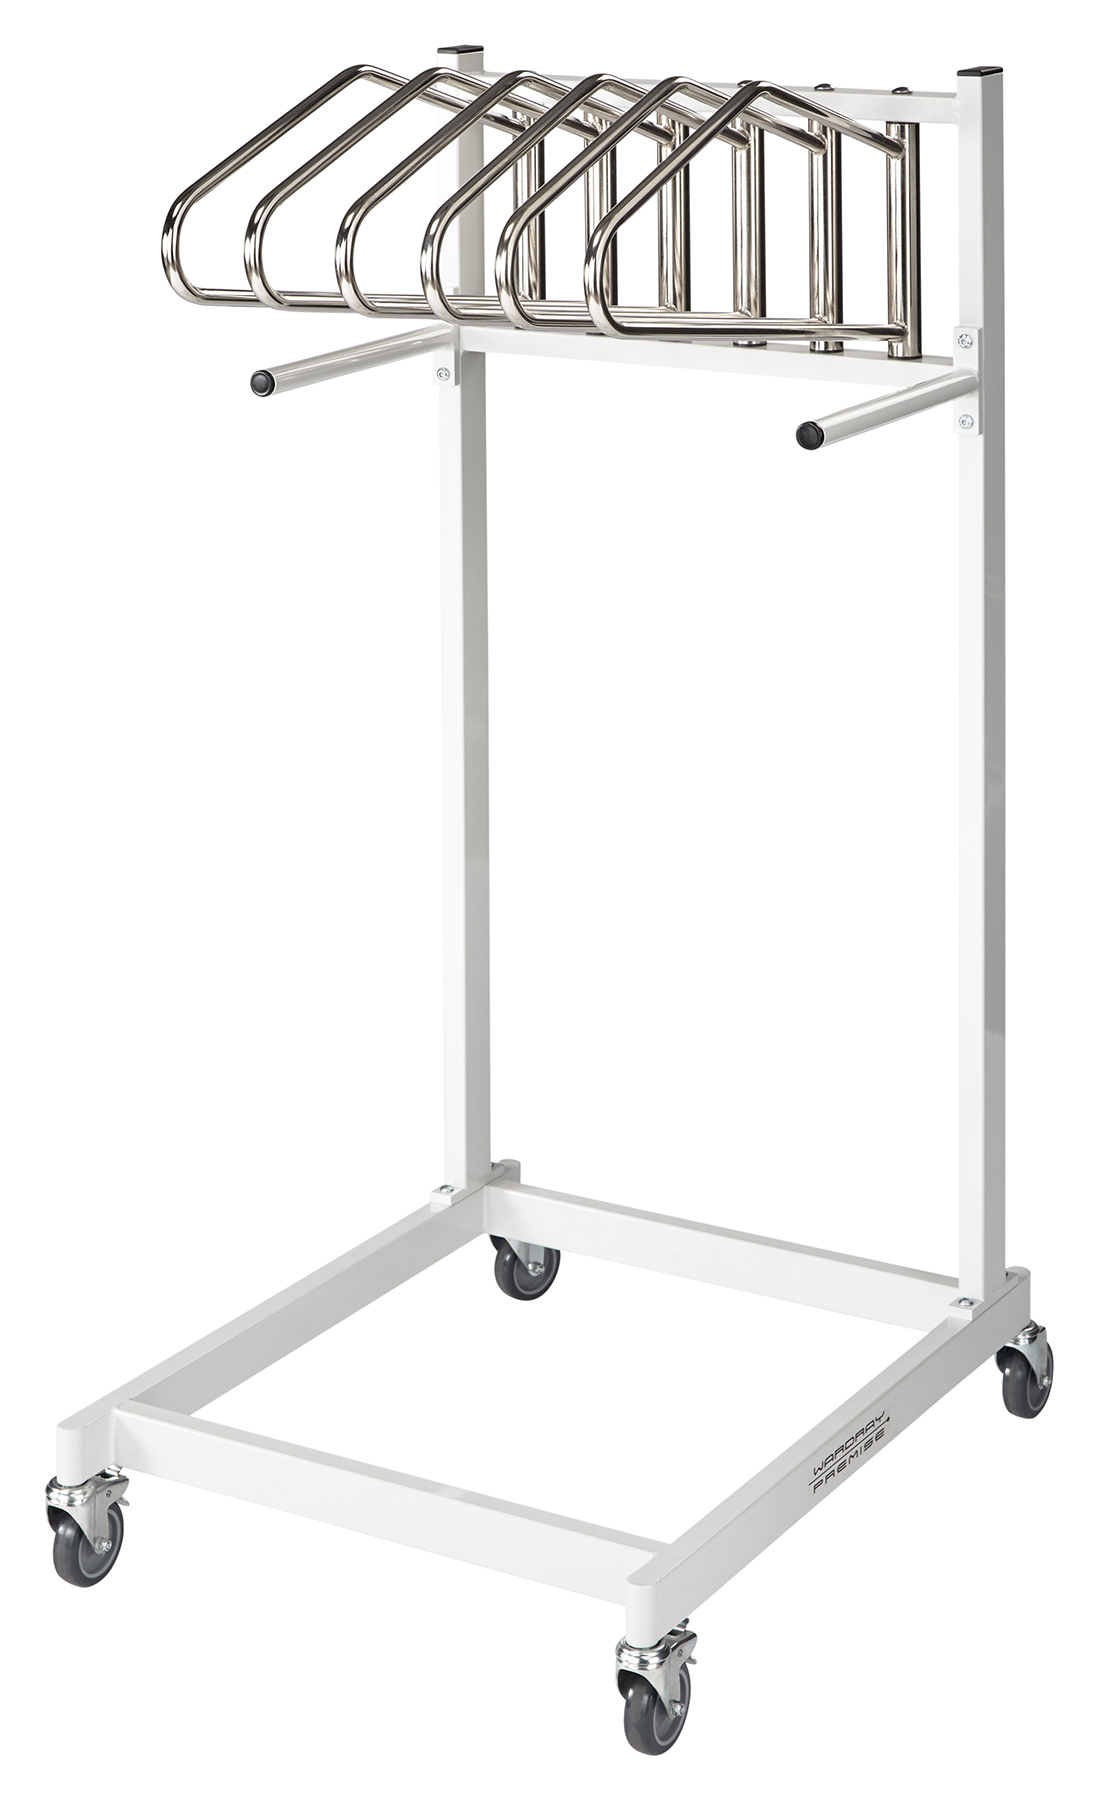 Picture 1 of Mobile Apron Storage - 6 Hangers